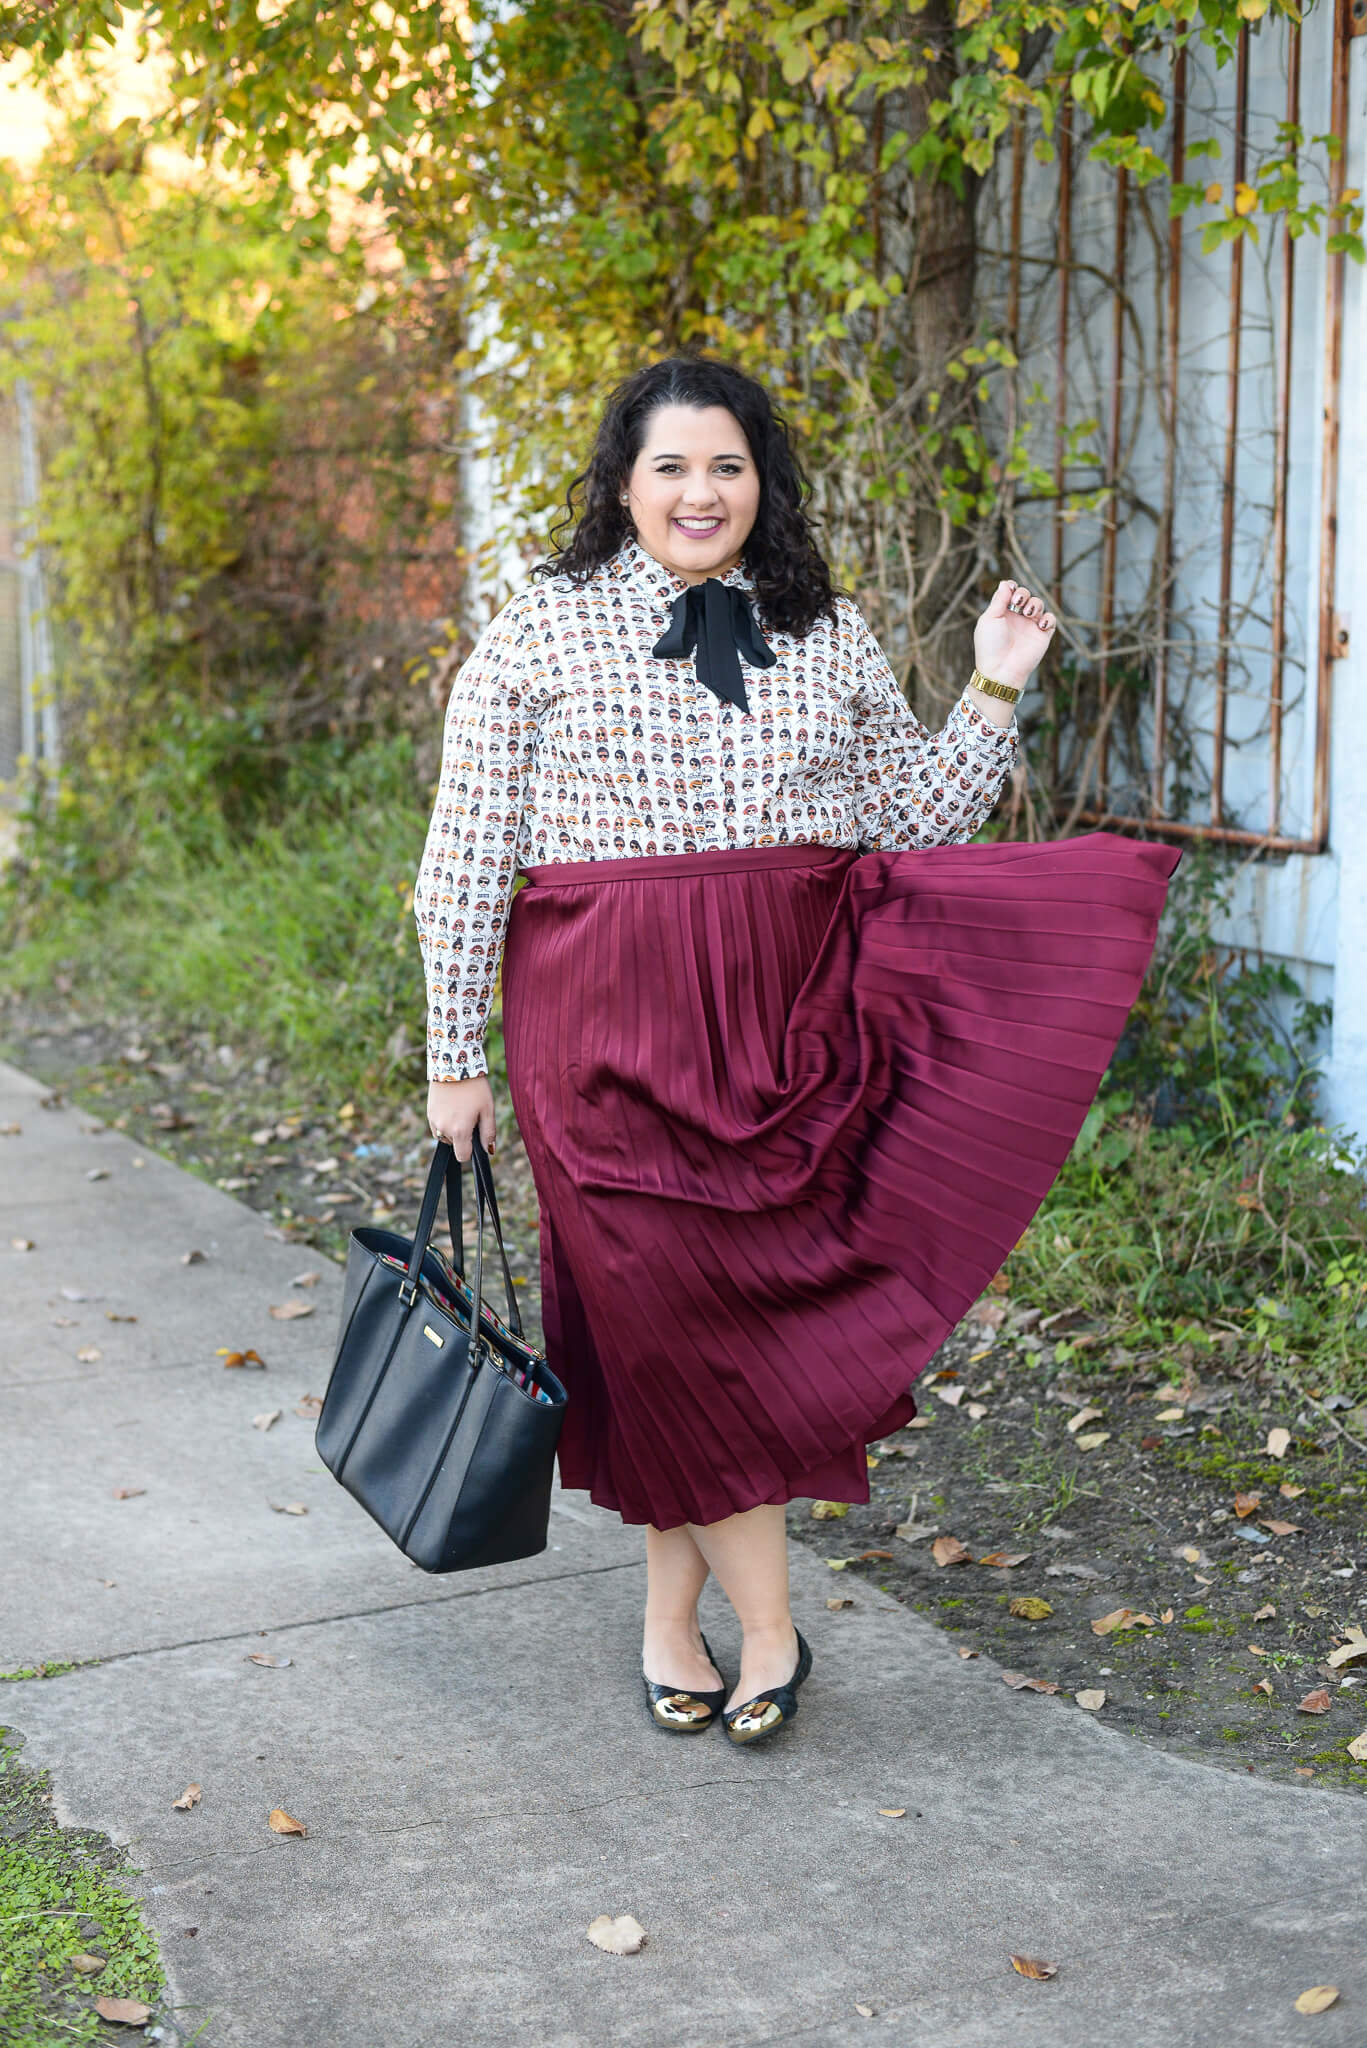 How to wear a statement piece to work as a plus size babe